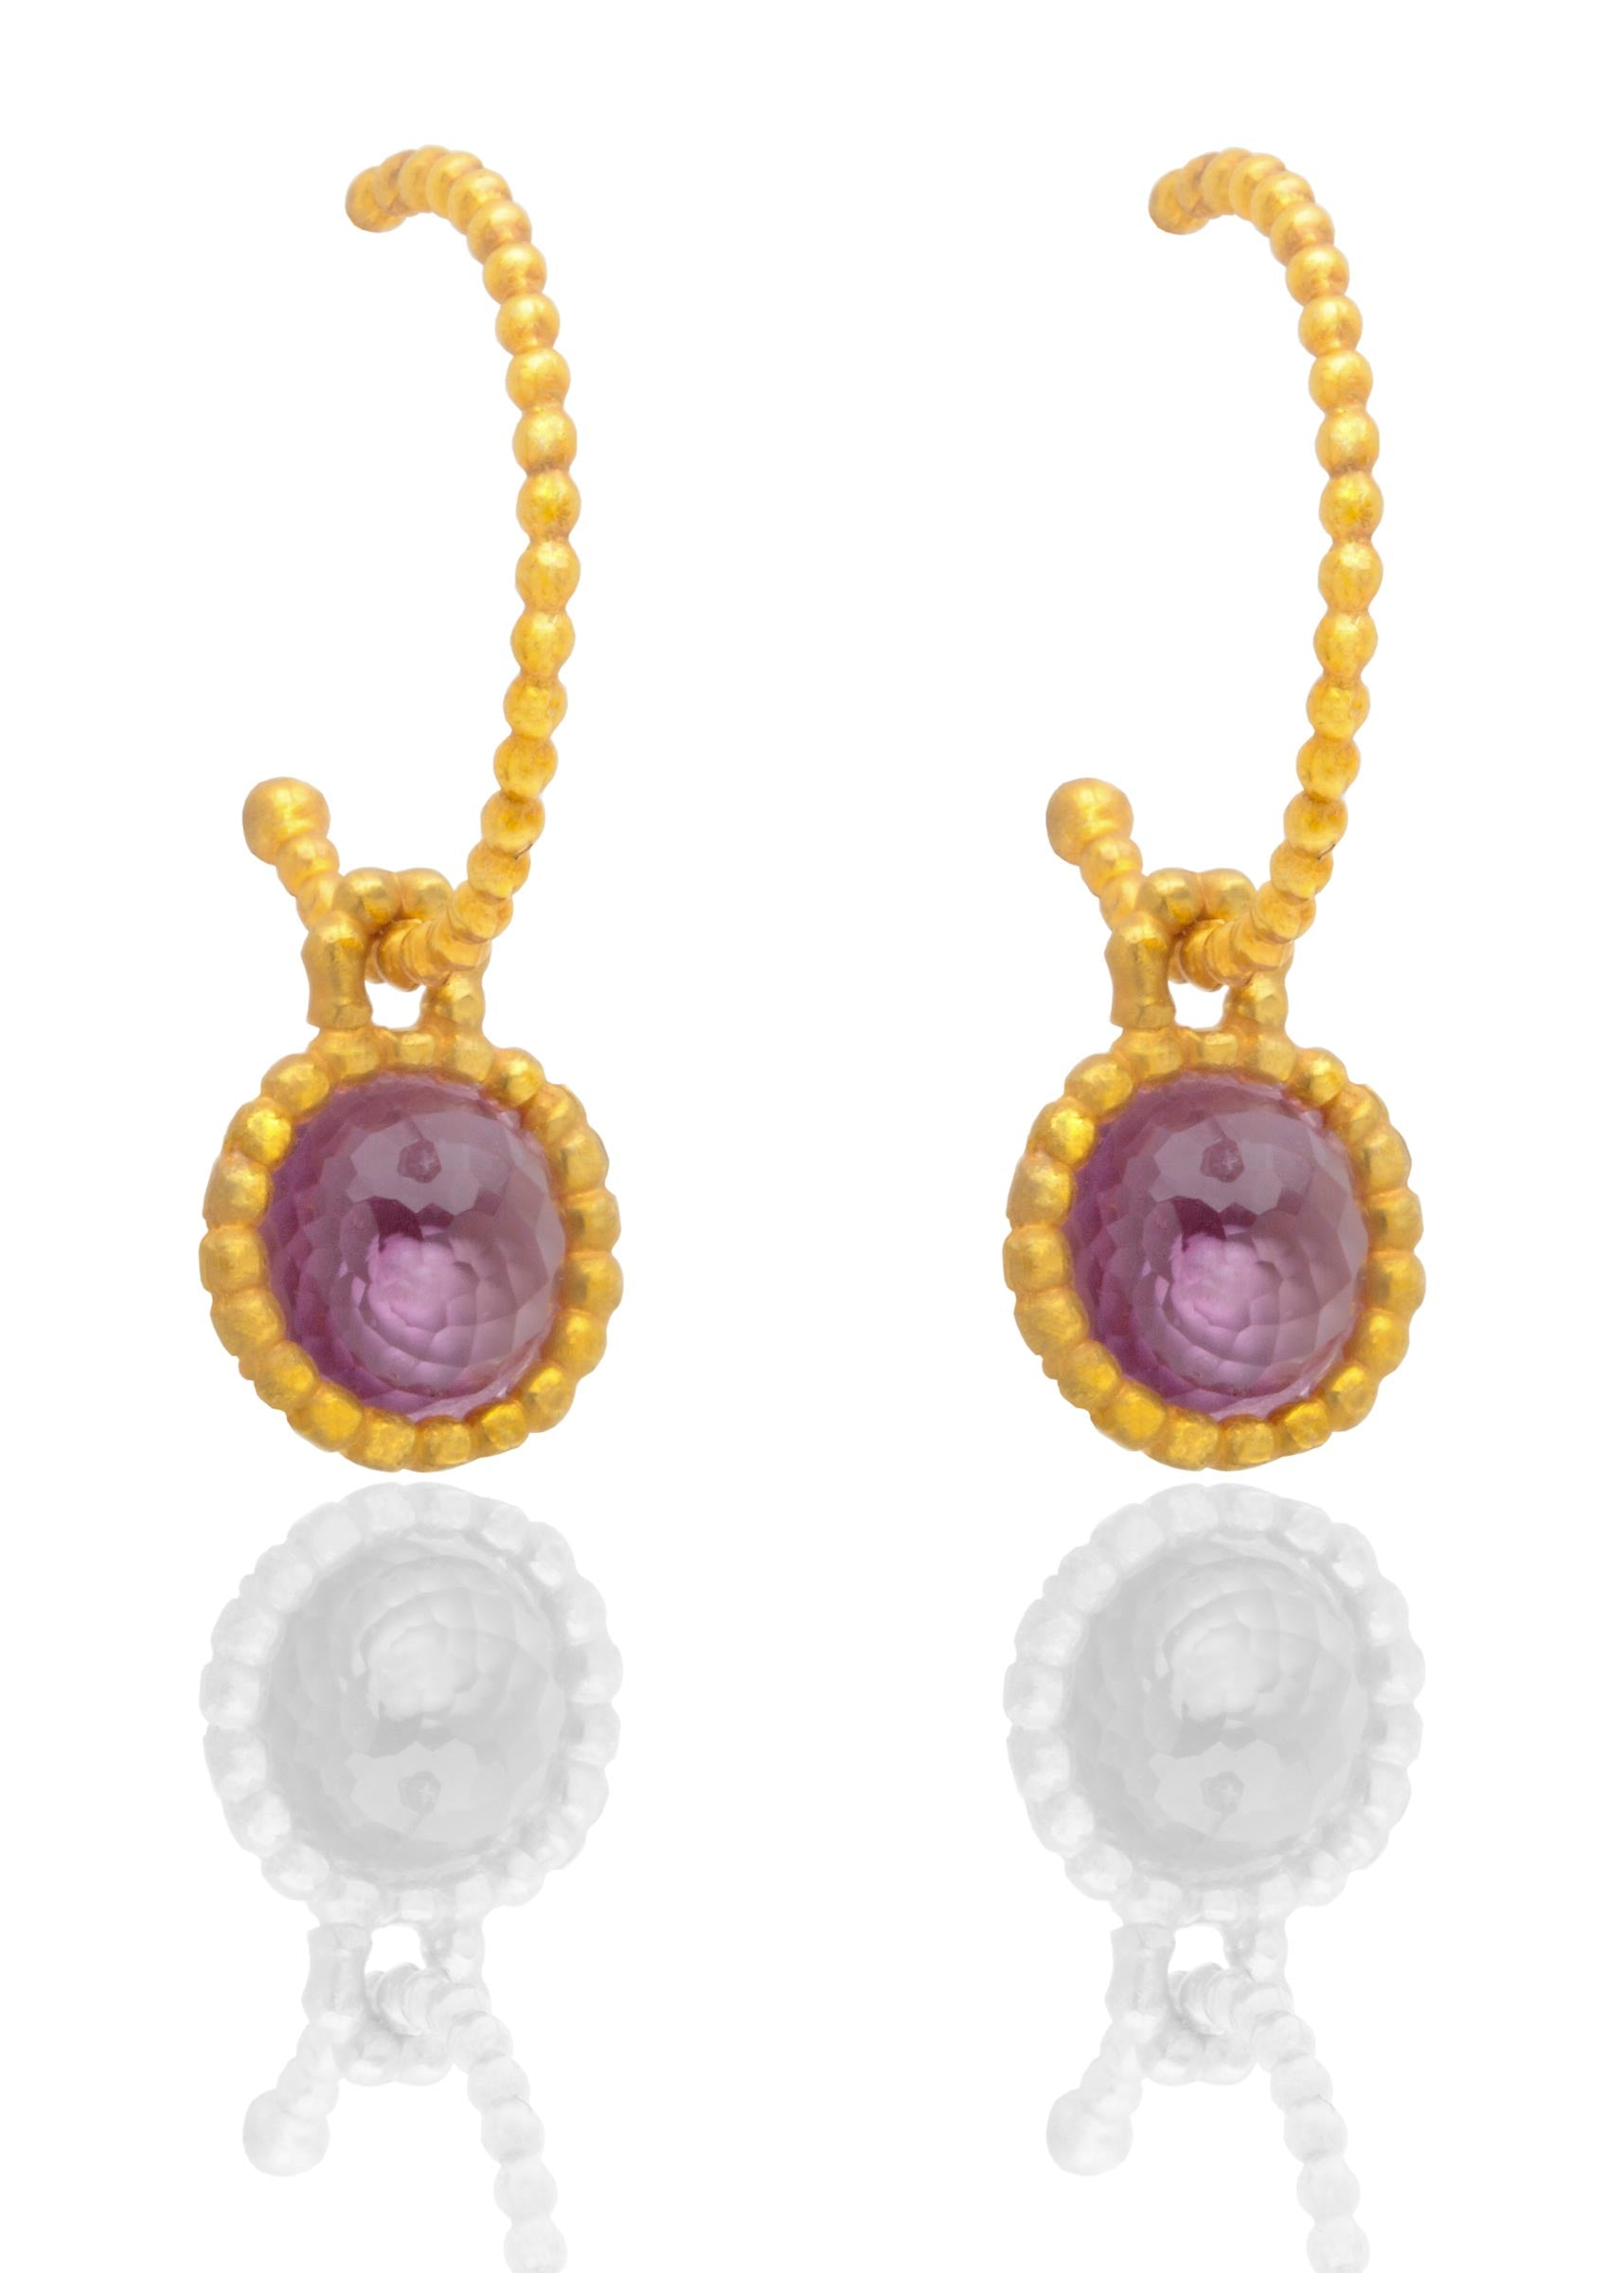 Byzantine gold vermeil hooped earrings with amethysts